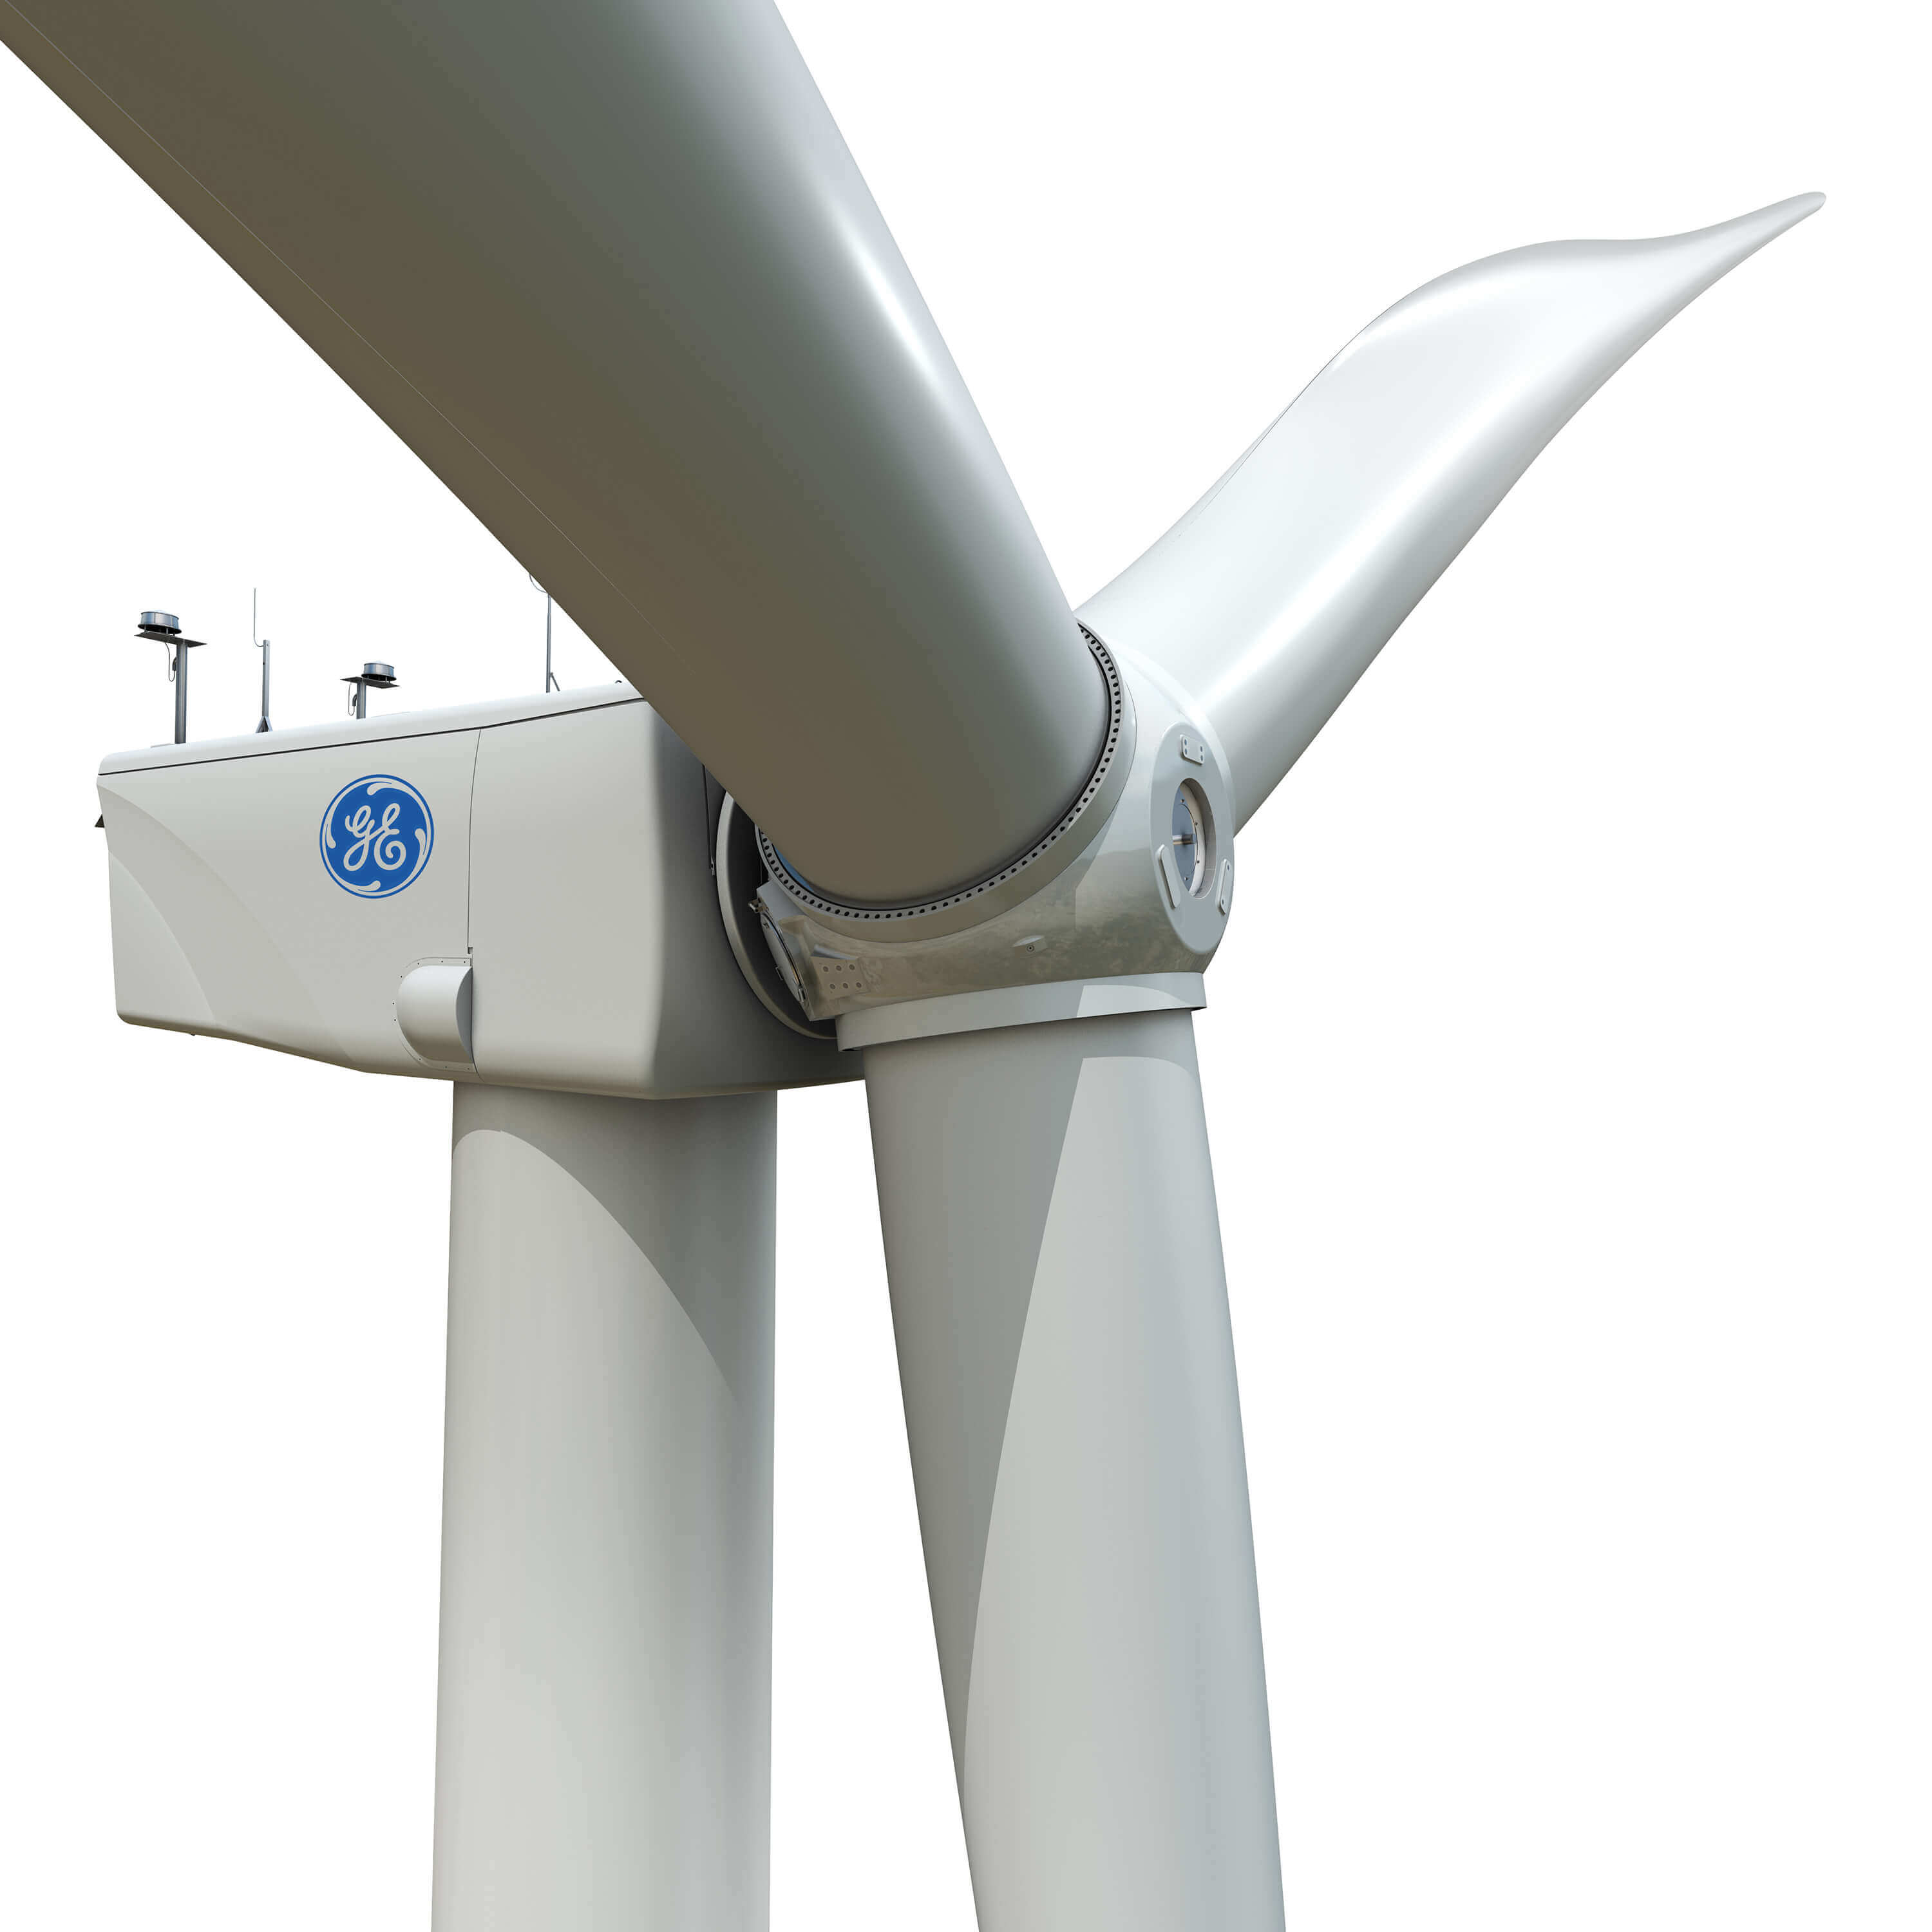 GE GE Signs 800 MW Wind Deal In Vietnam